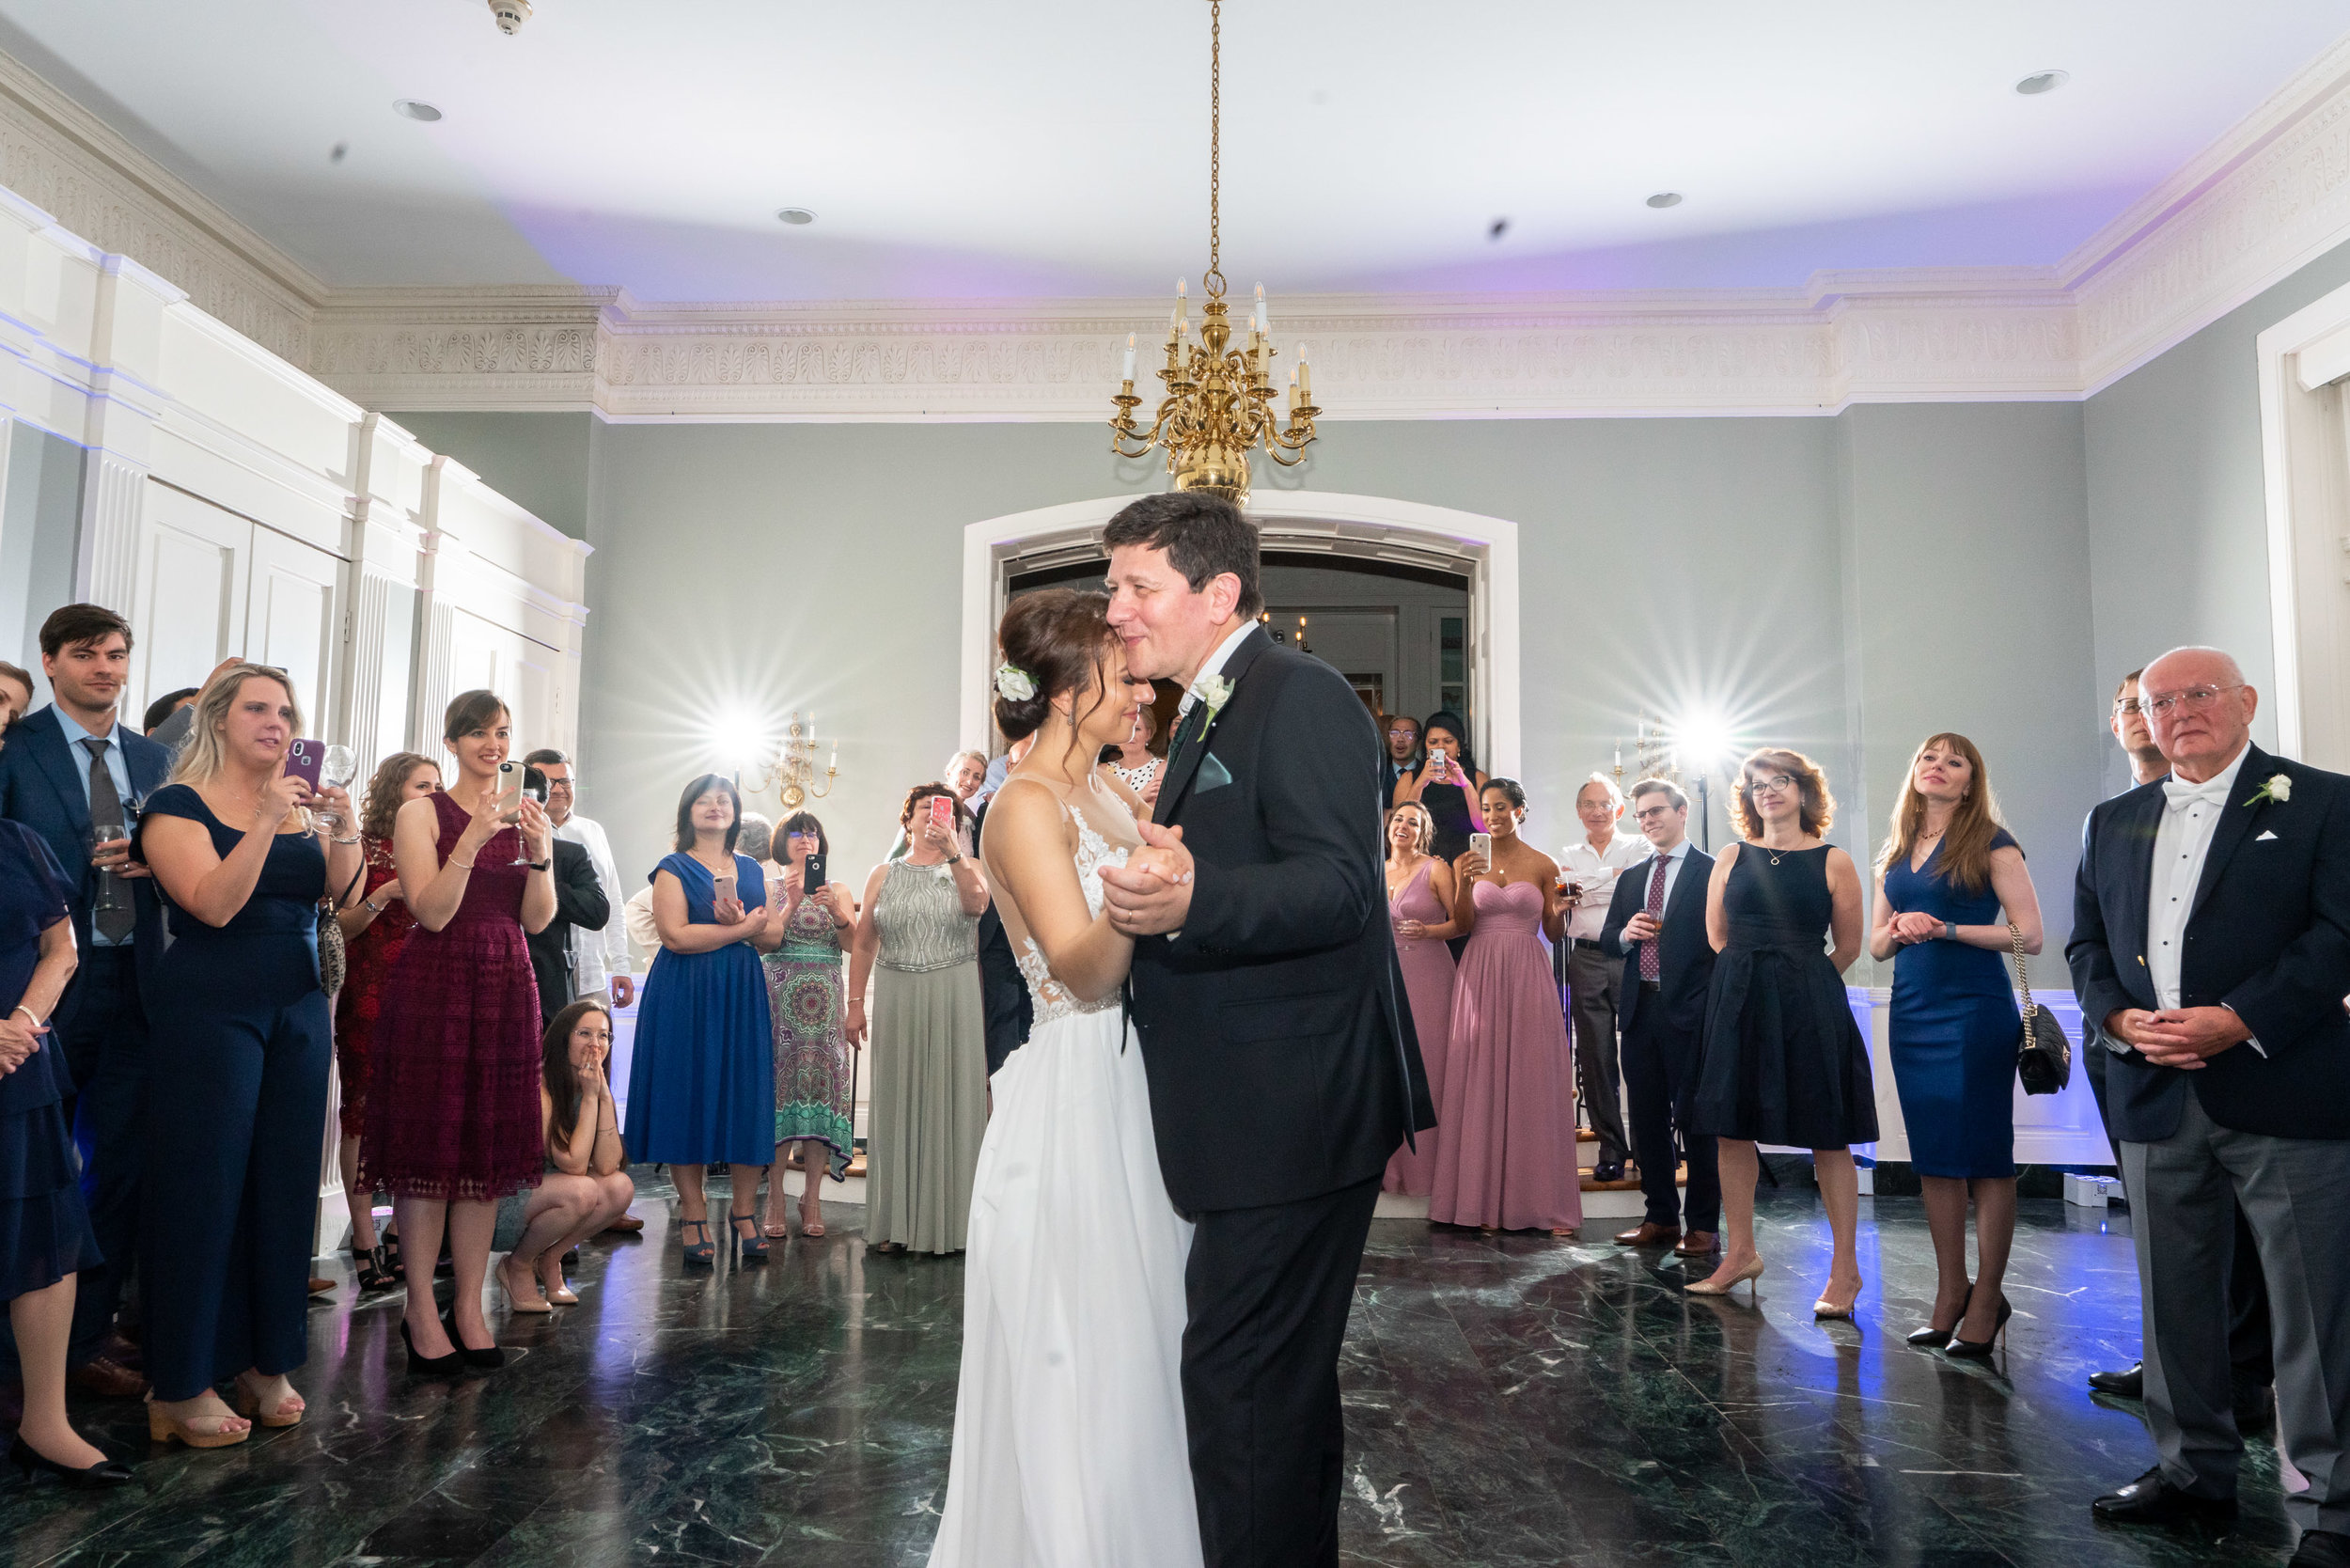 Emotional Father daughter dance in ballroom at Rockville wedding venue Glenview Mansion